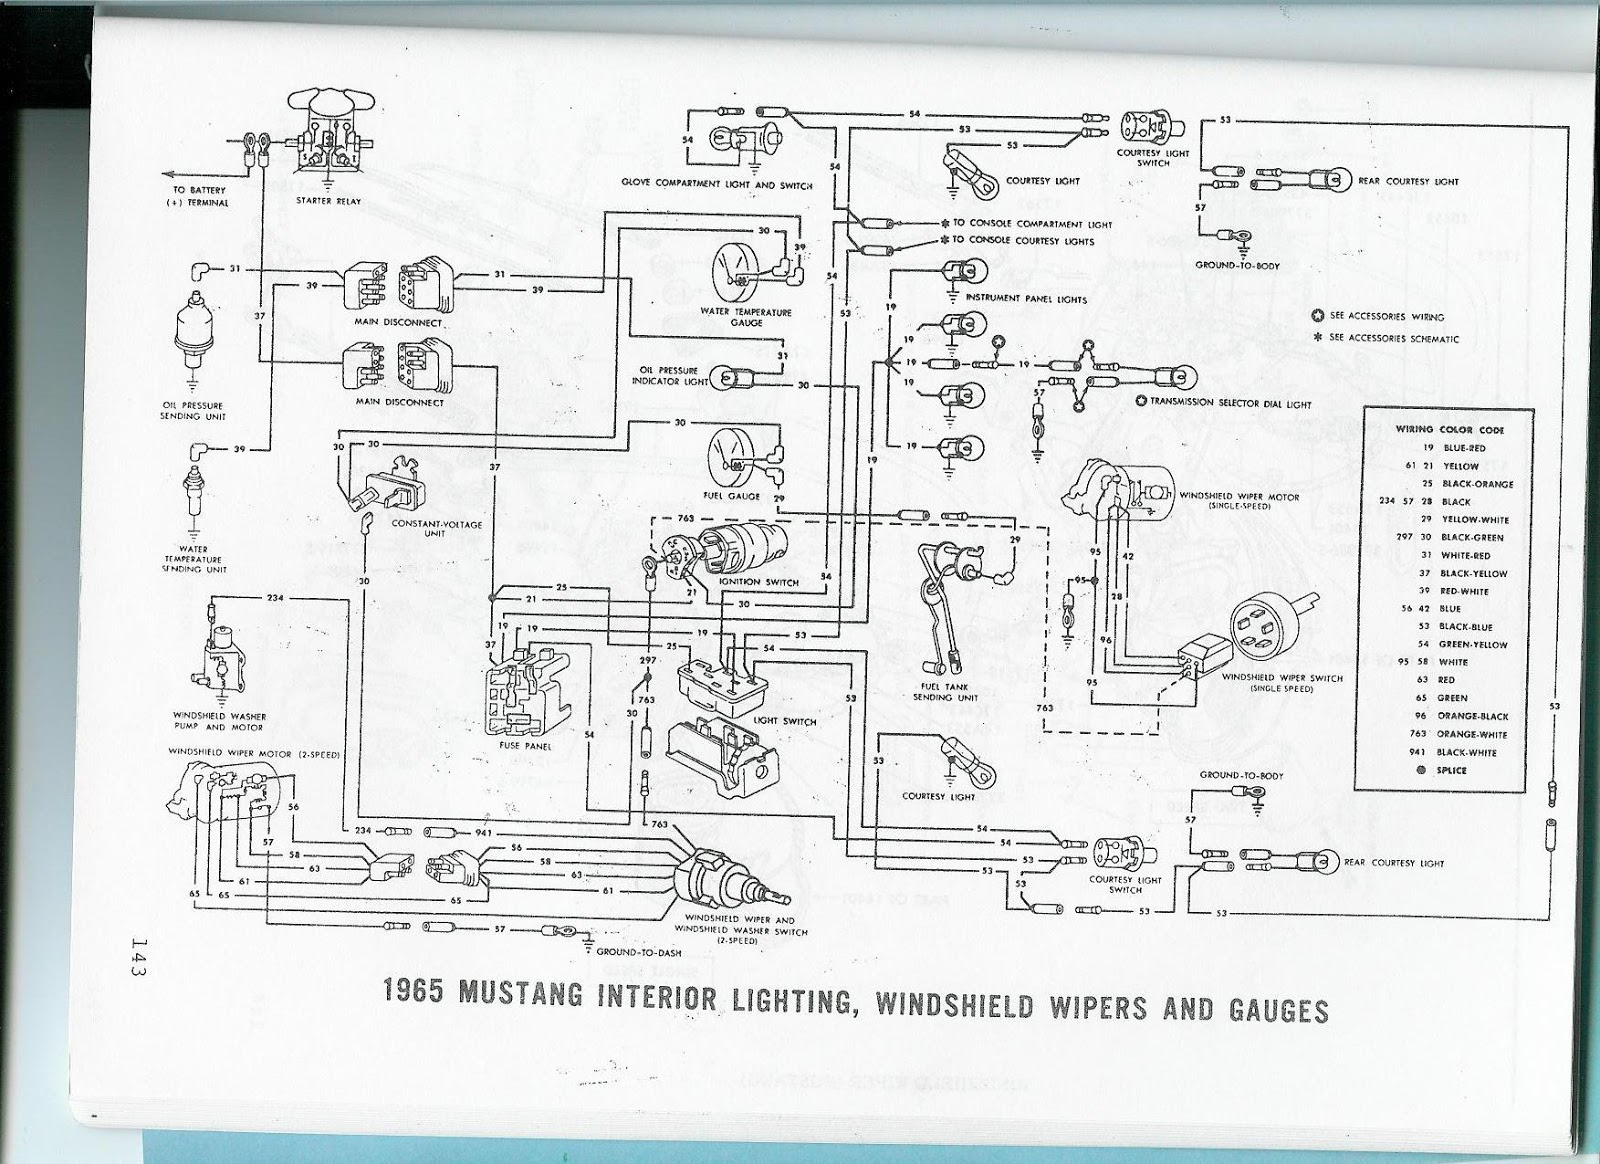 the care and feeding of ponies 1965 mustang wiring diagrams 1965 mustang wiring diagrams